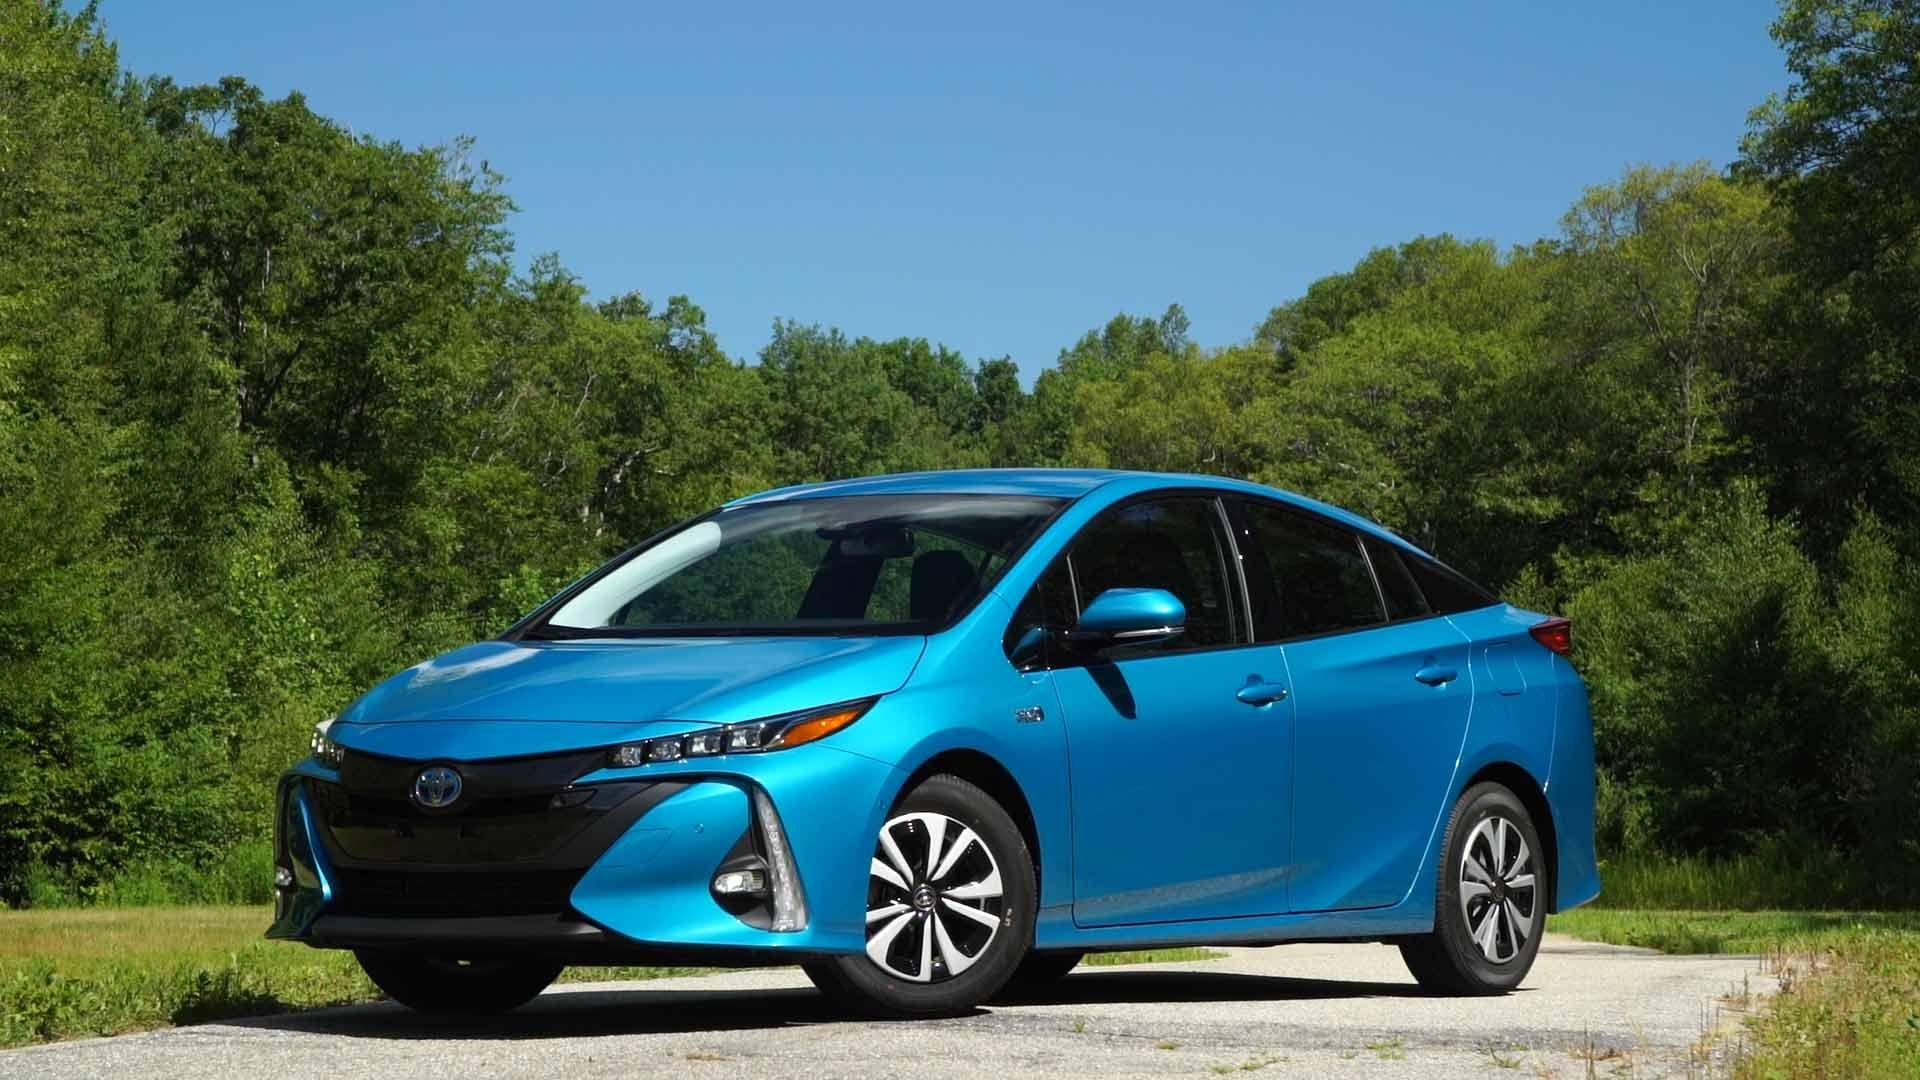 2017 toyota prius prime review geeked out green machine